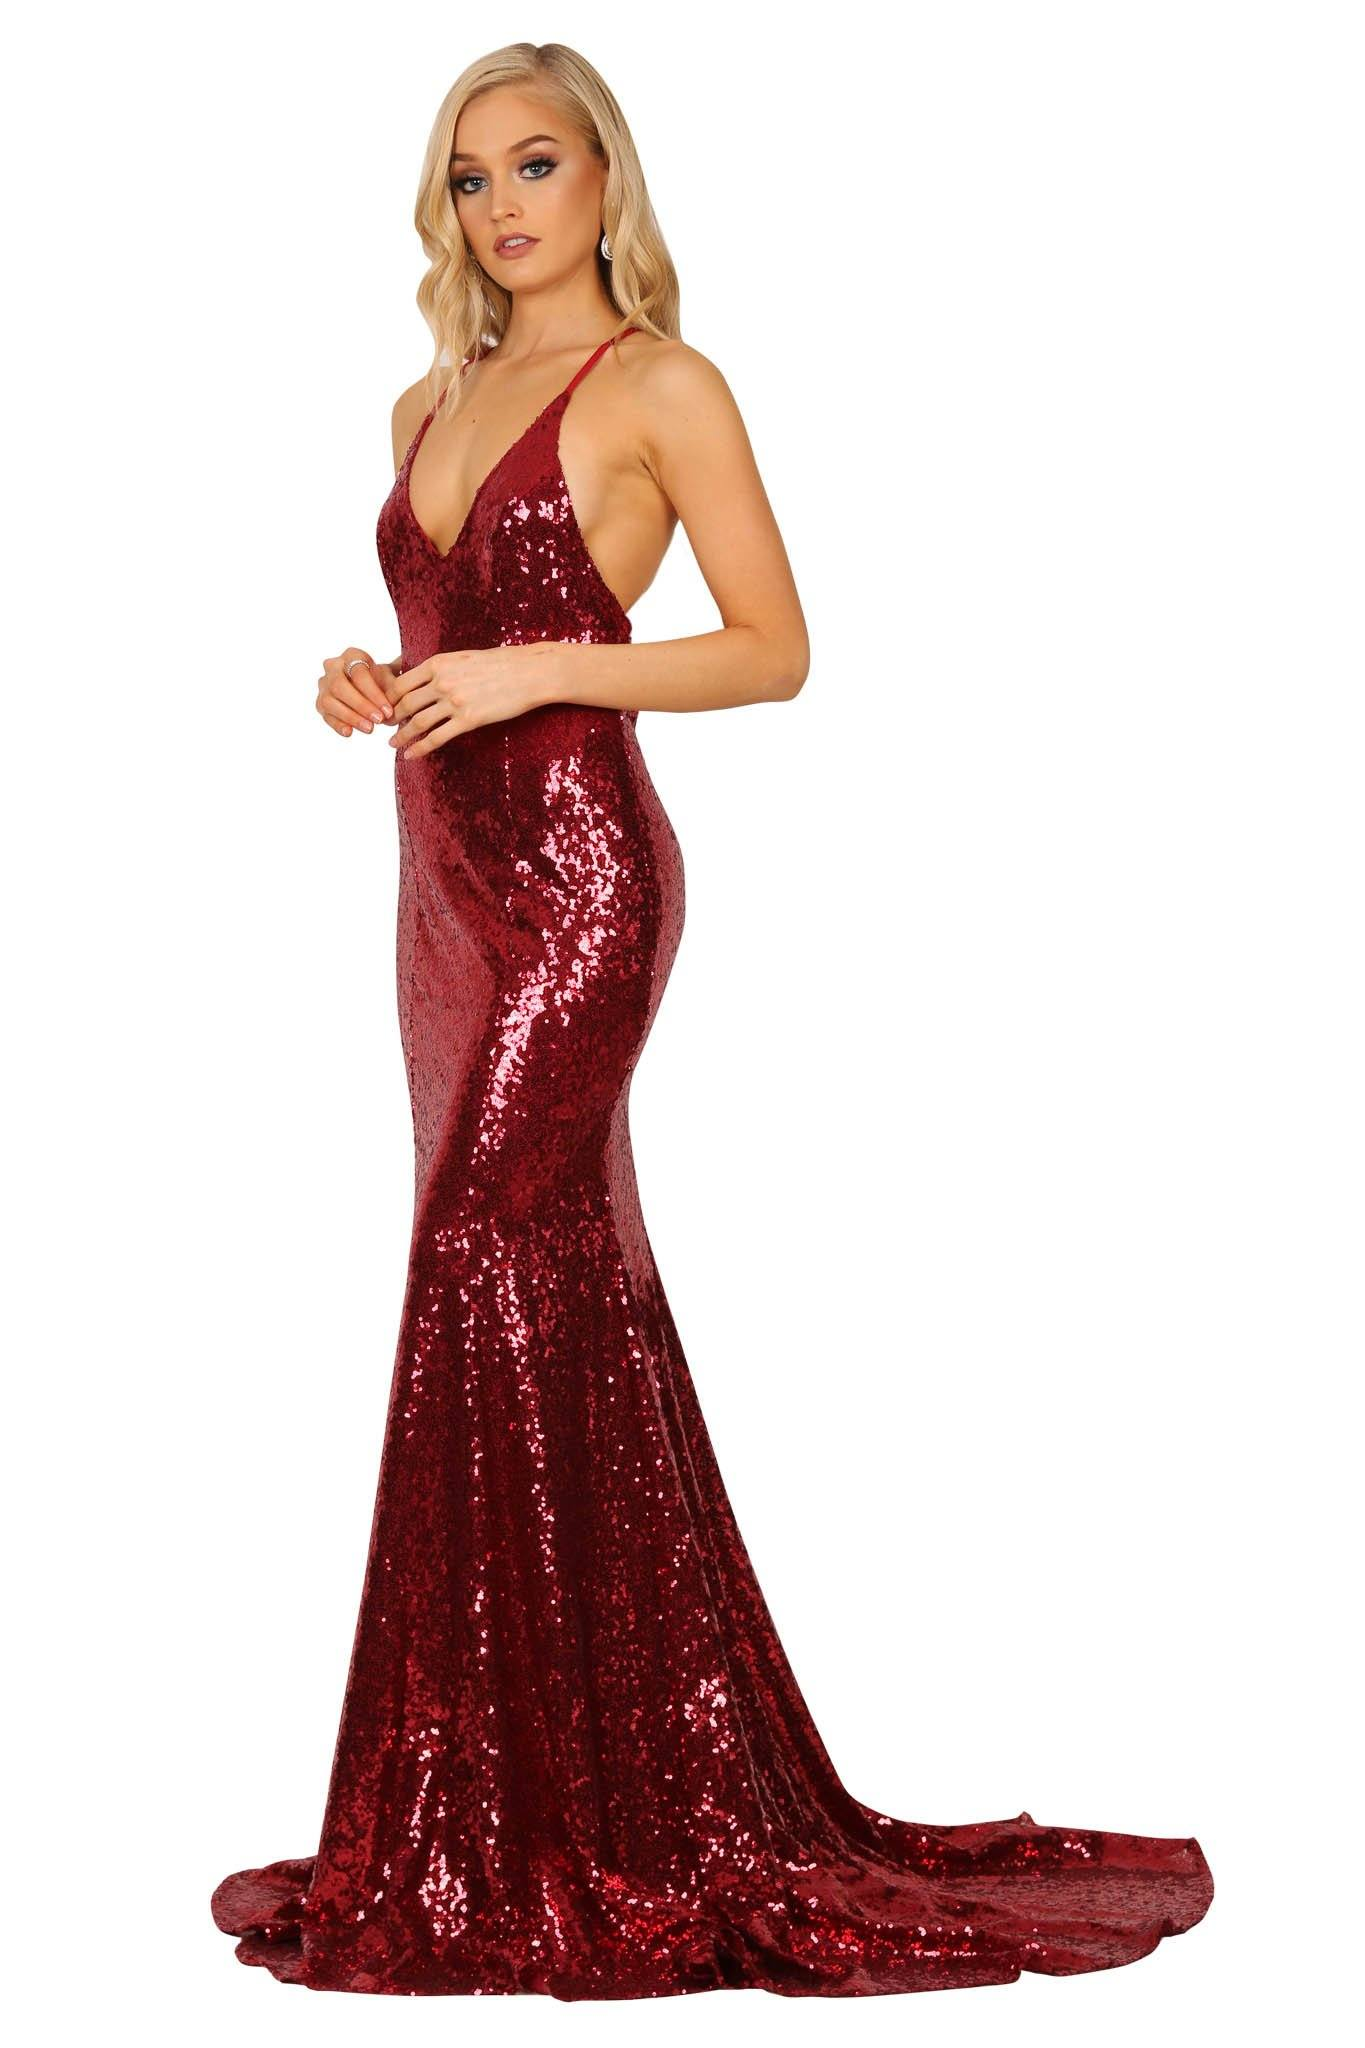 Wine red coloured sequin sleeveless long evening gown with deep V neckline, crisscross back straps, V open back, and long train